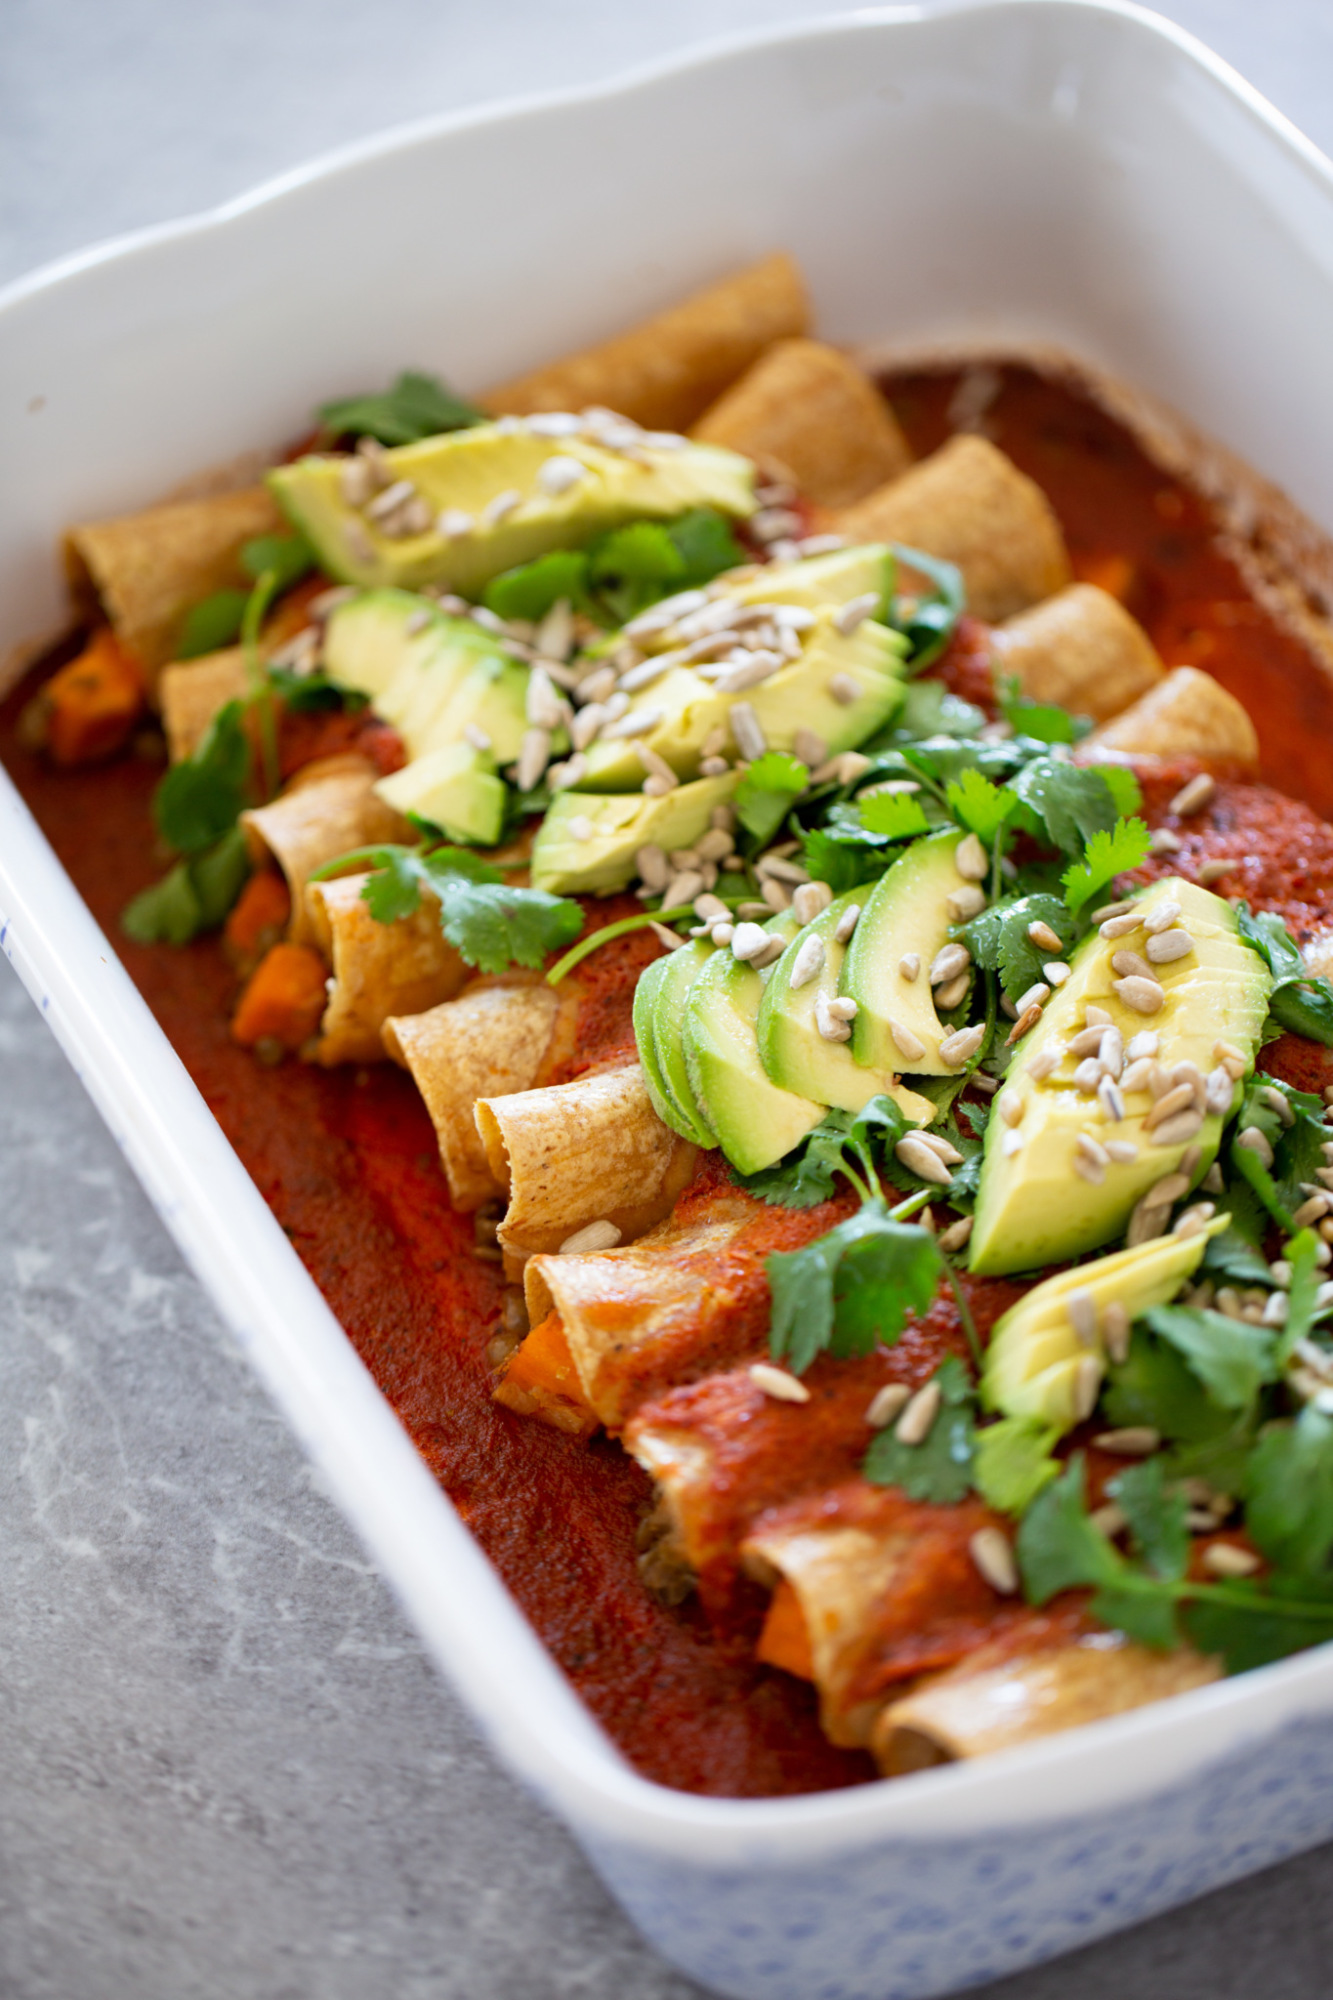 vegan enchiladas with lentils